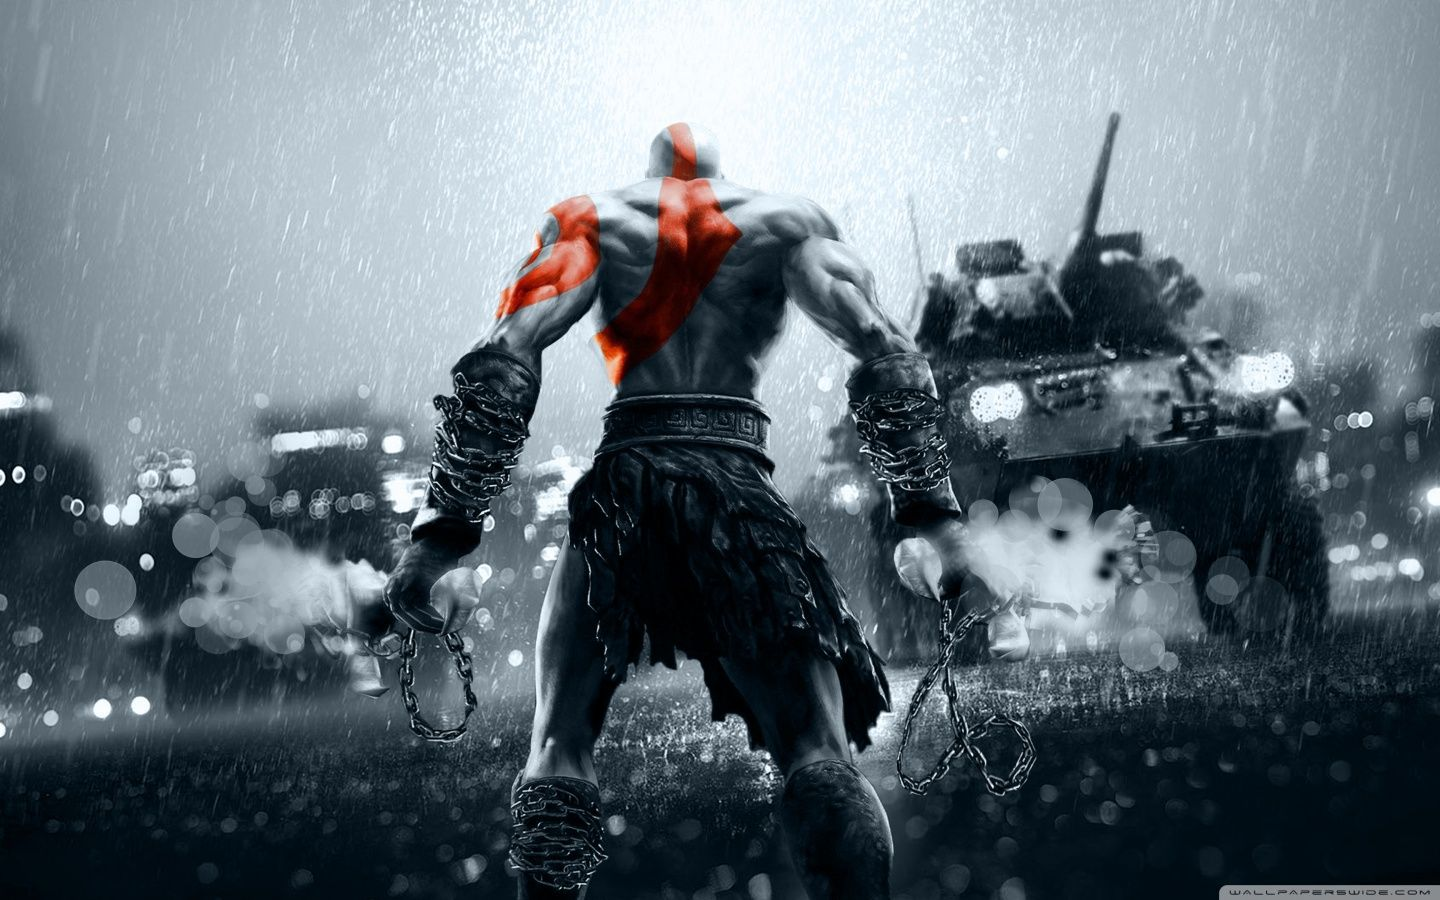 God Of War Wallpaper High Quality Resolution Gaming Wallpapers 4k Gaming Wallpaper Gaming Wallpapers Hd